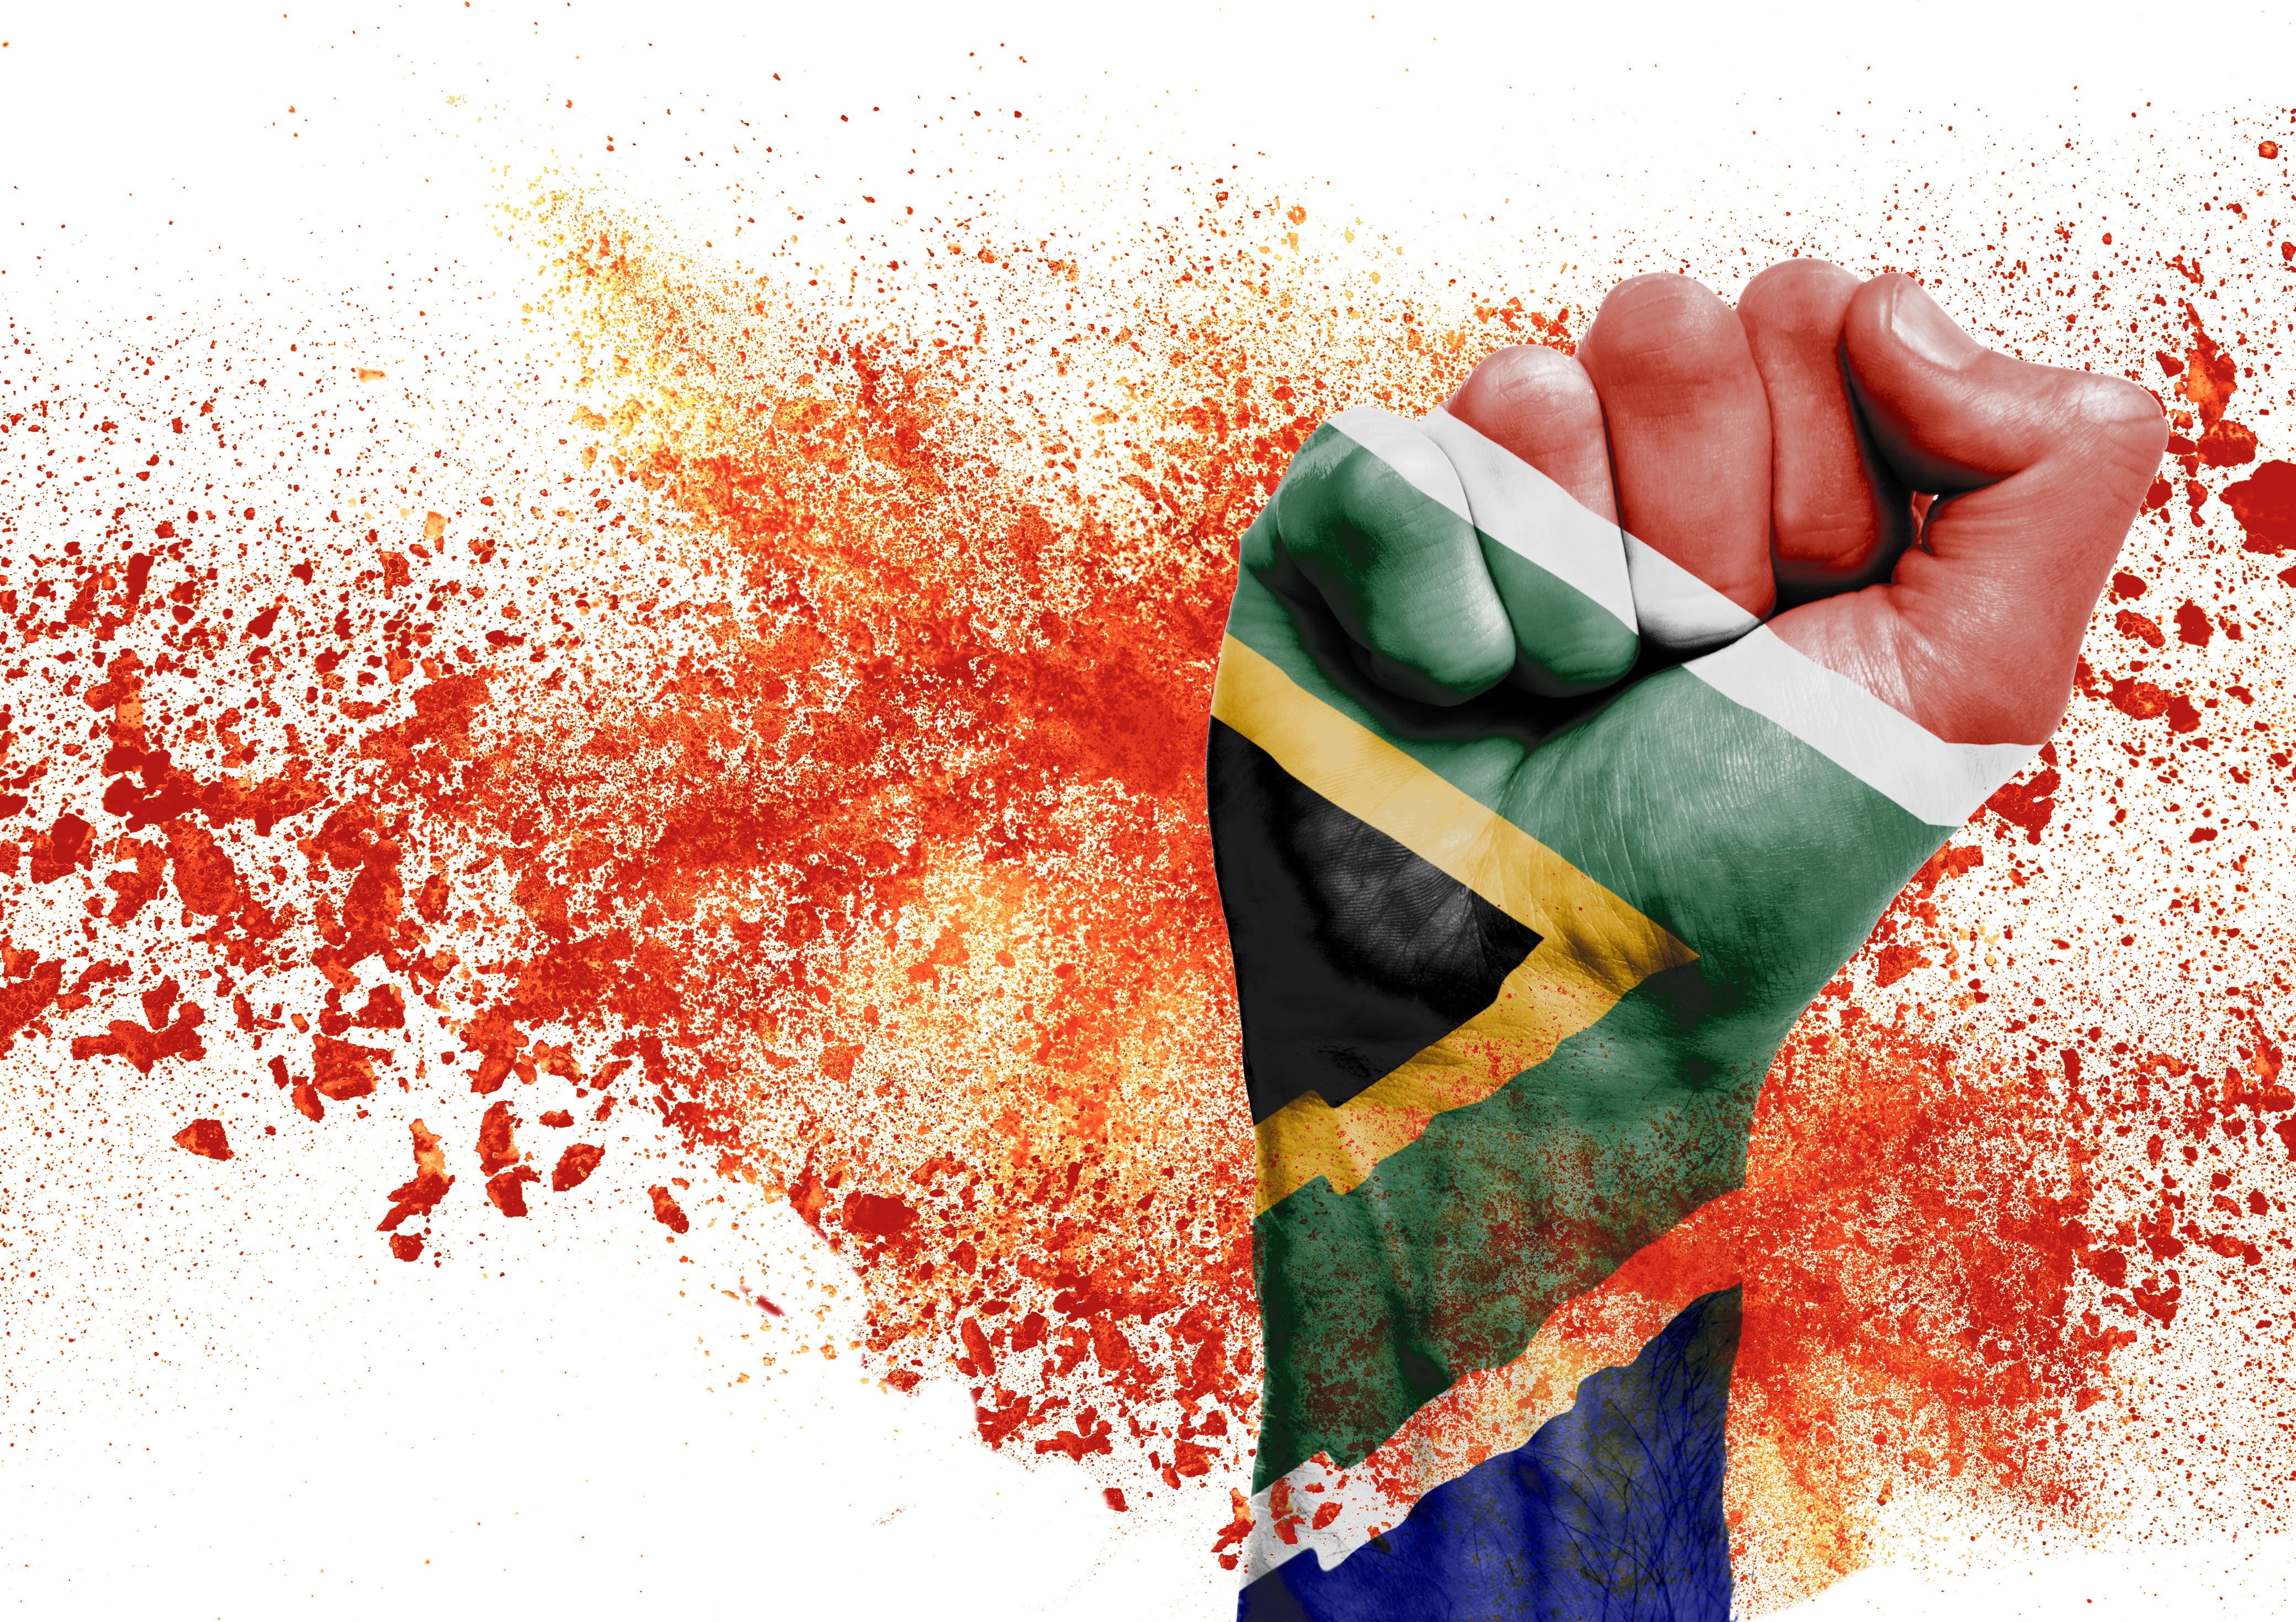 A picture of a hand with a south african flag painted on it and orange spray of paint in the background